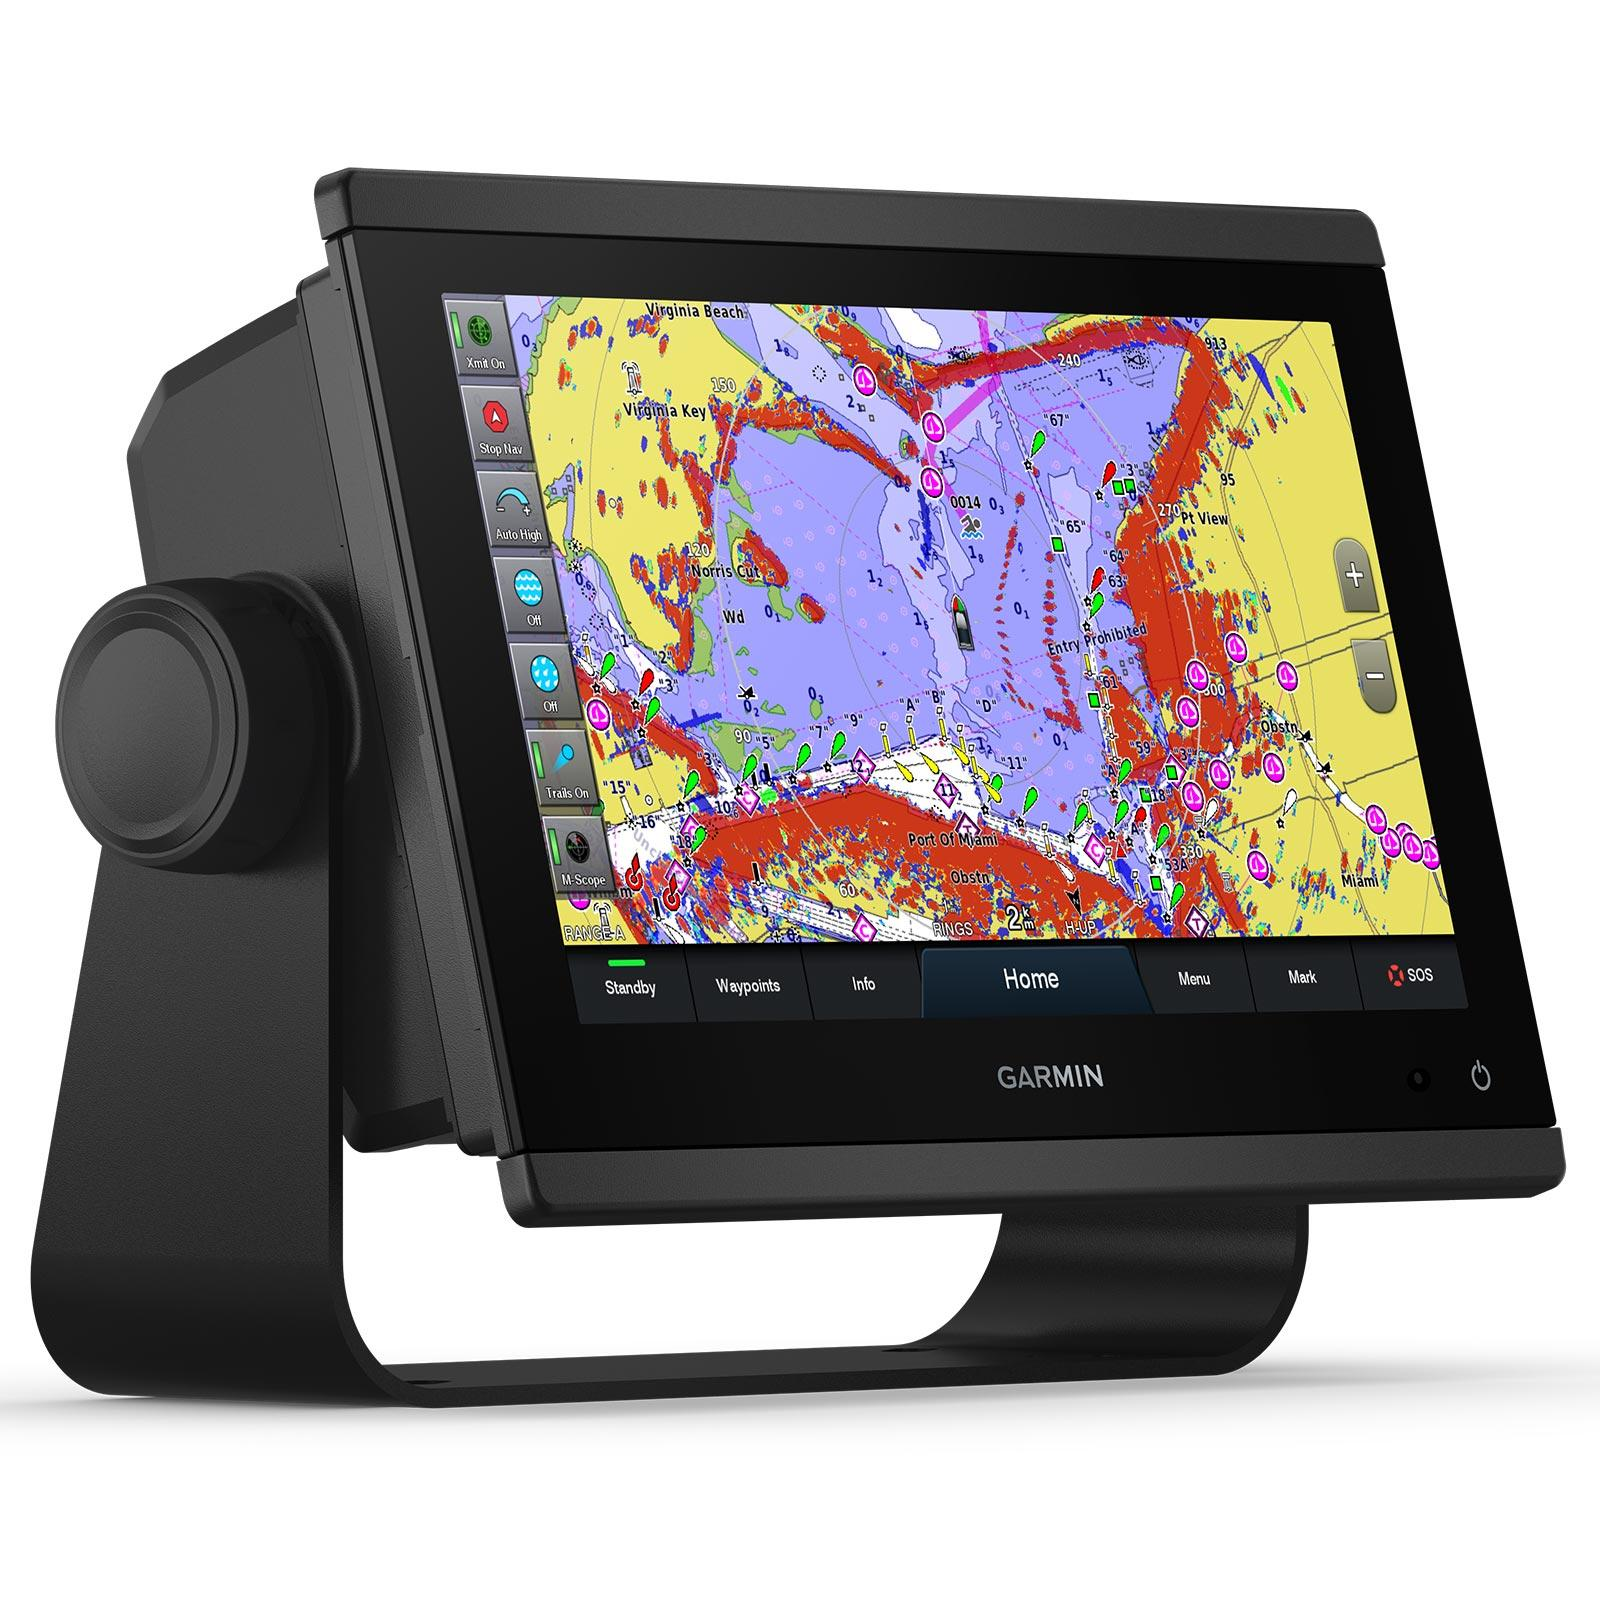 Garmin GPSMAP 943xsv Full Screen